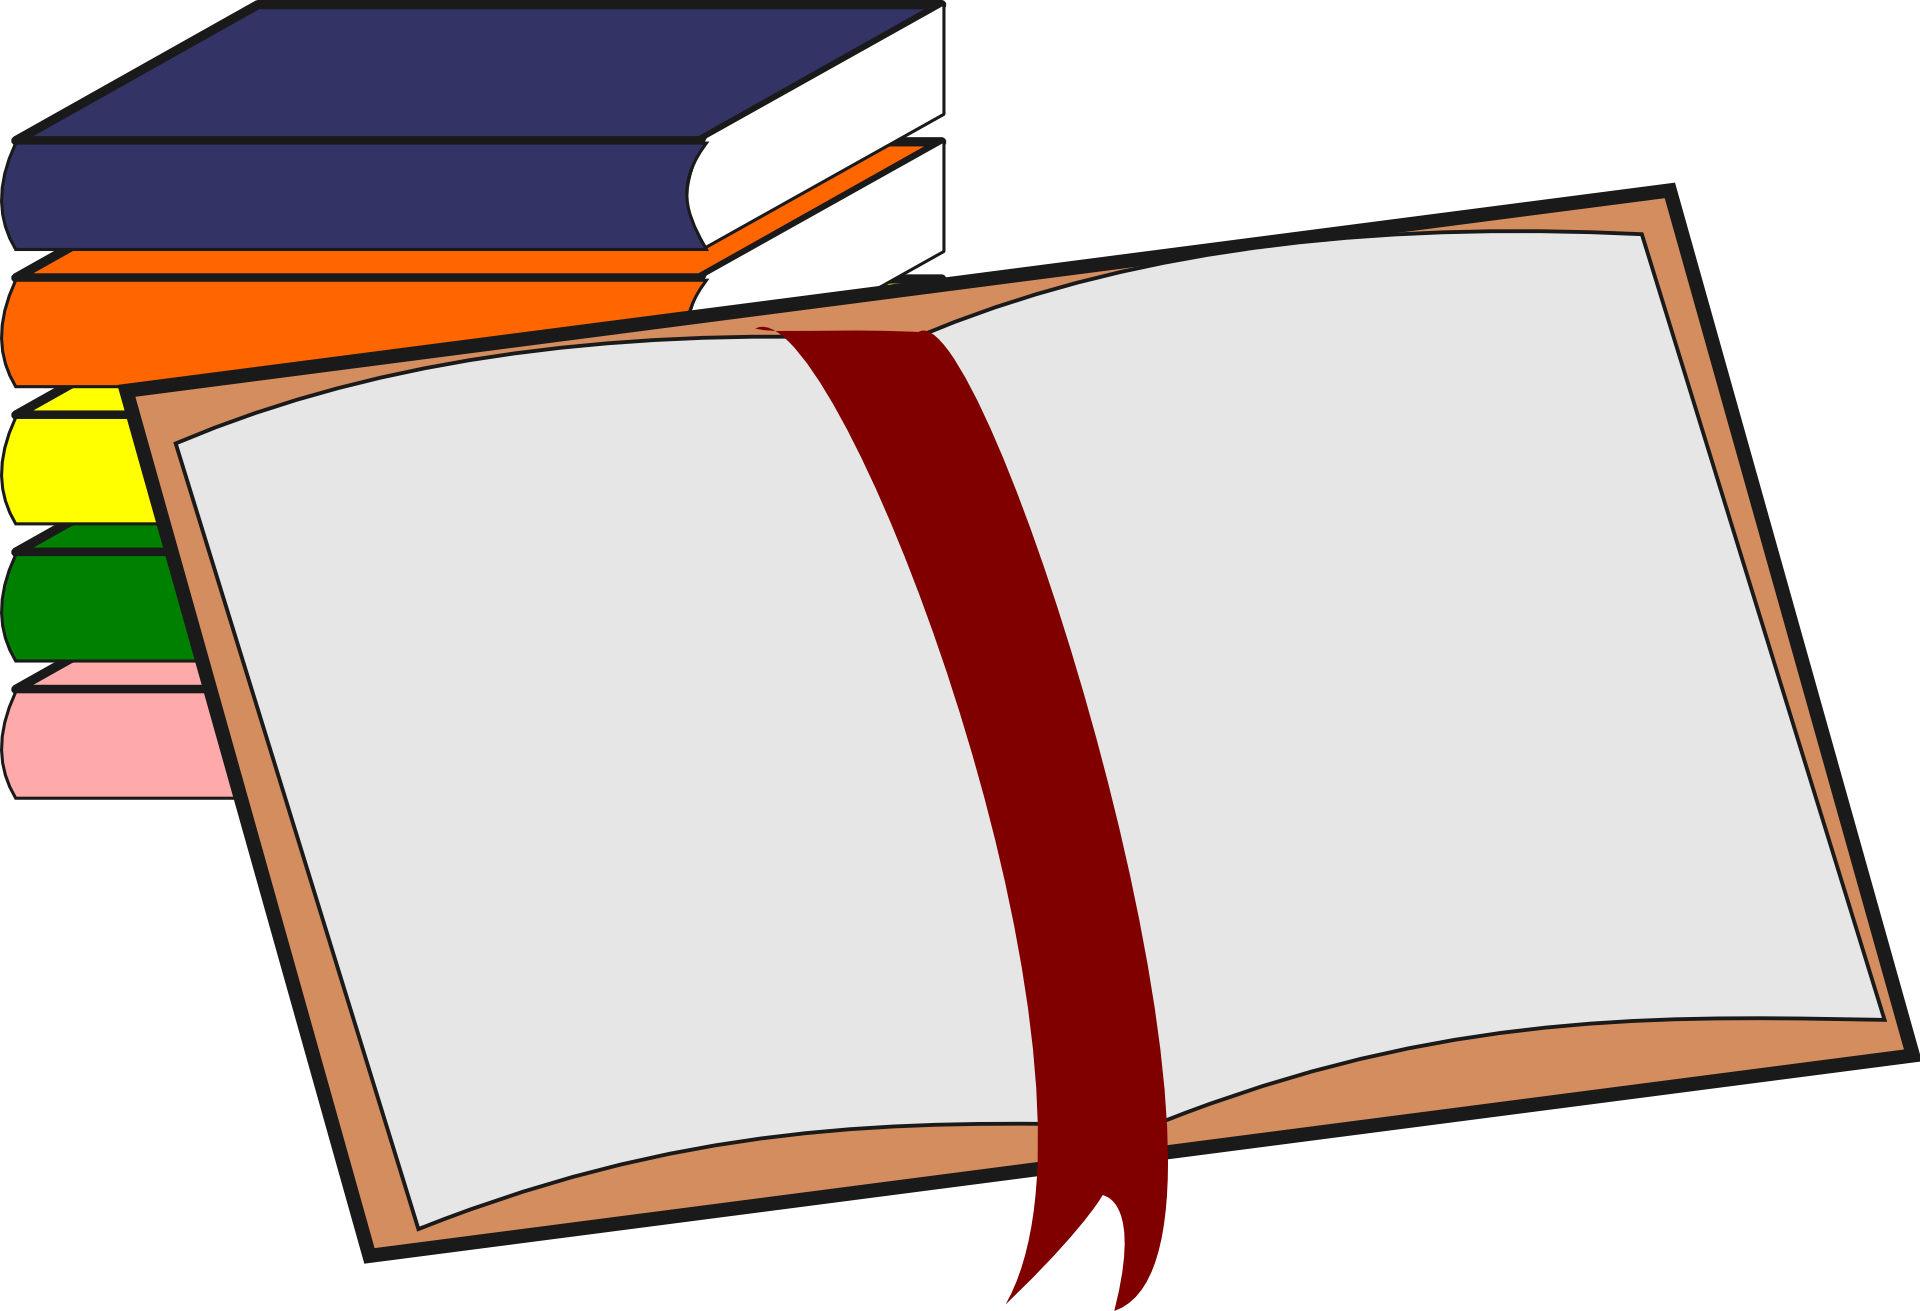 Open book drawing free image